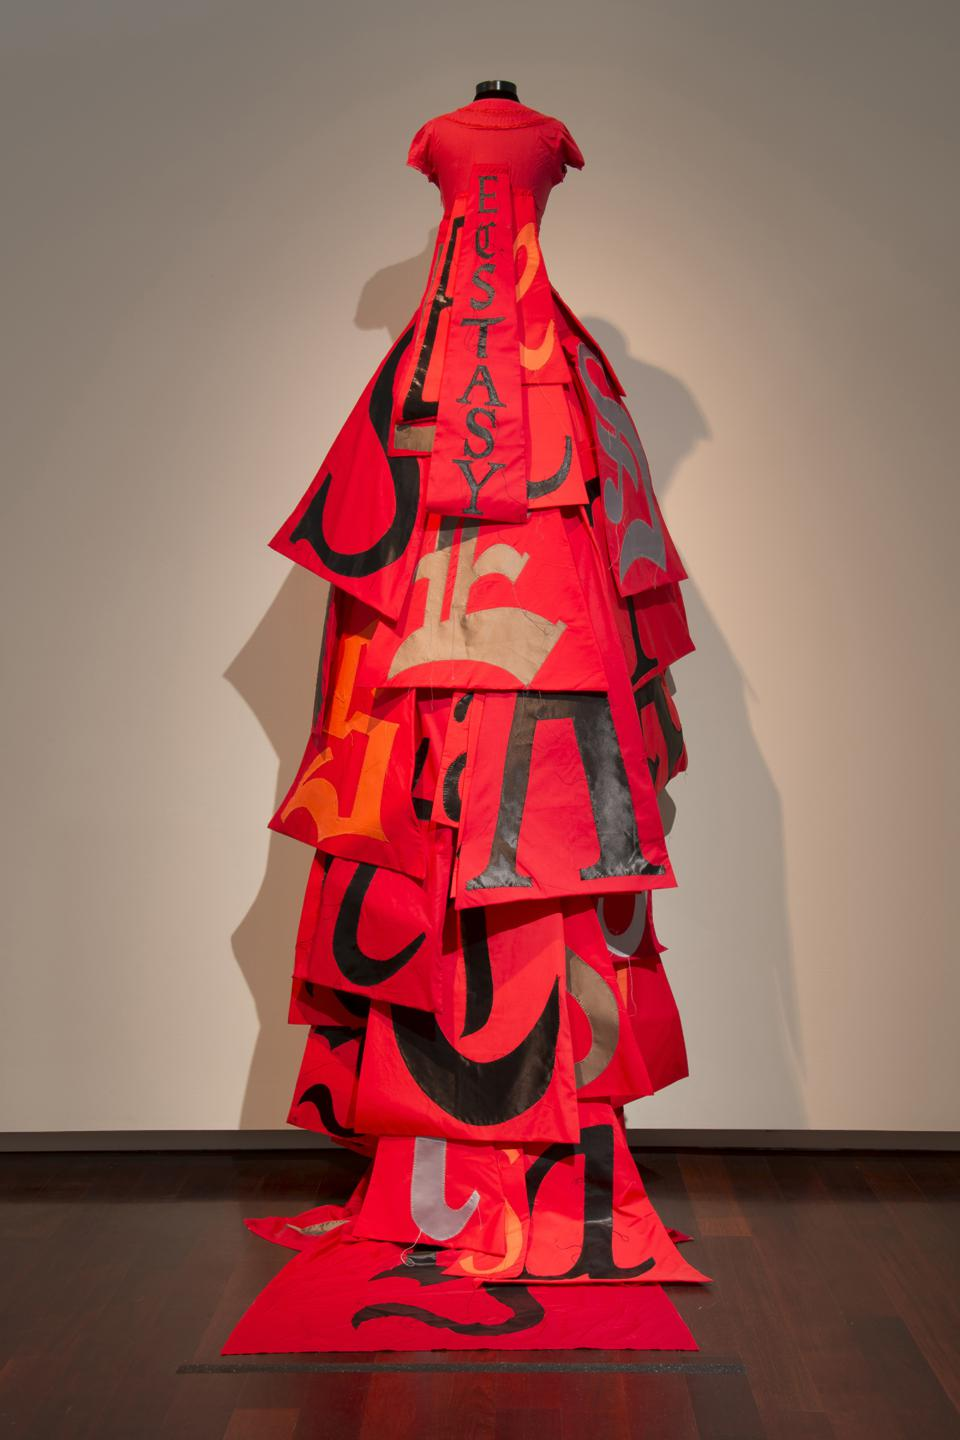 Lesley Dill, Red Ecstasy Dress from Divide Light, 2008. Cotton, thread, and crinoline.